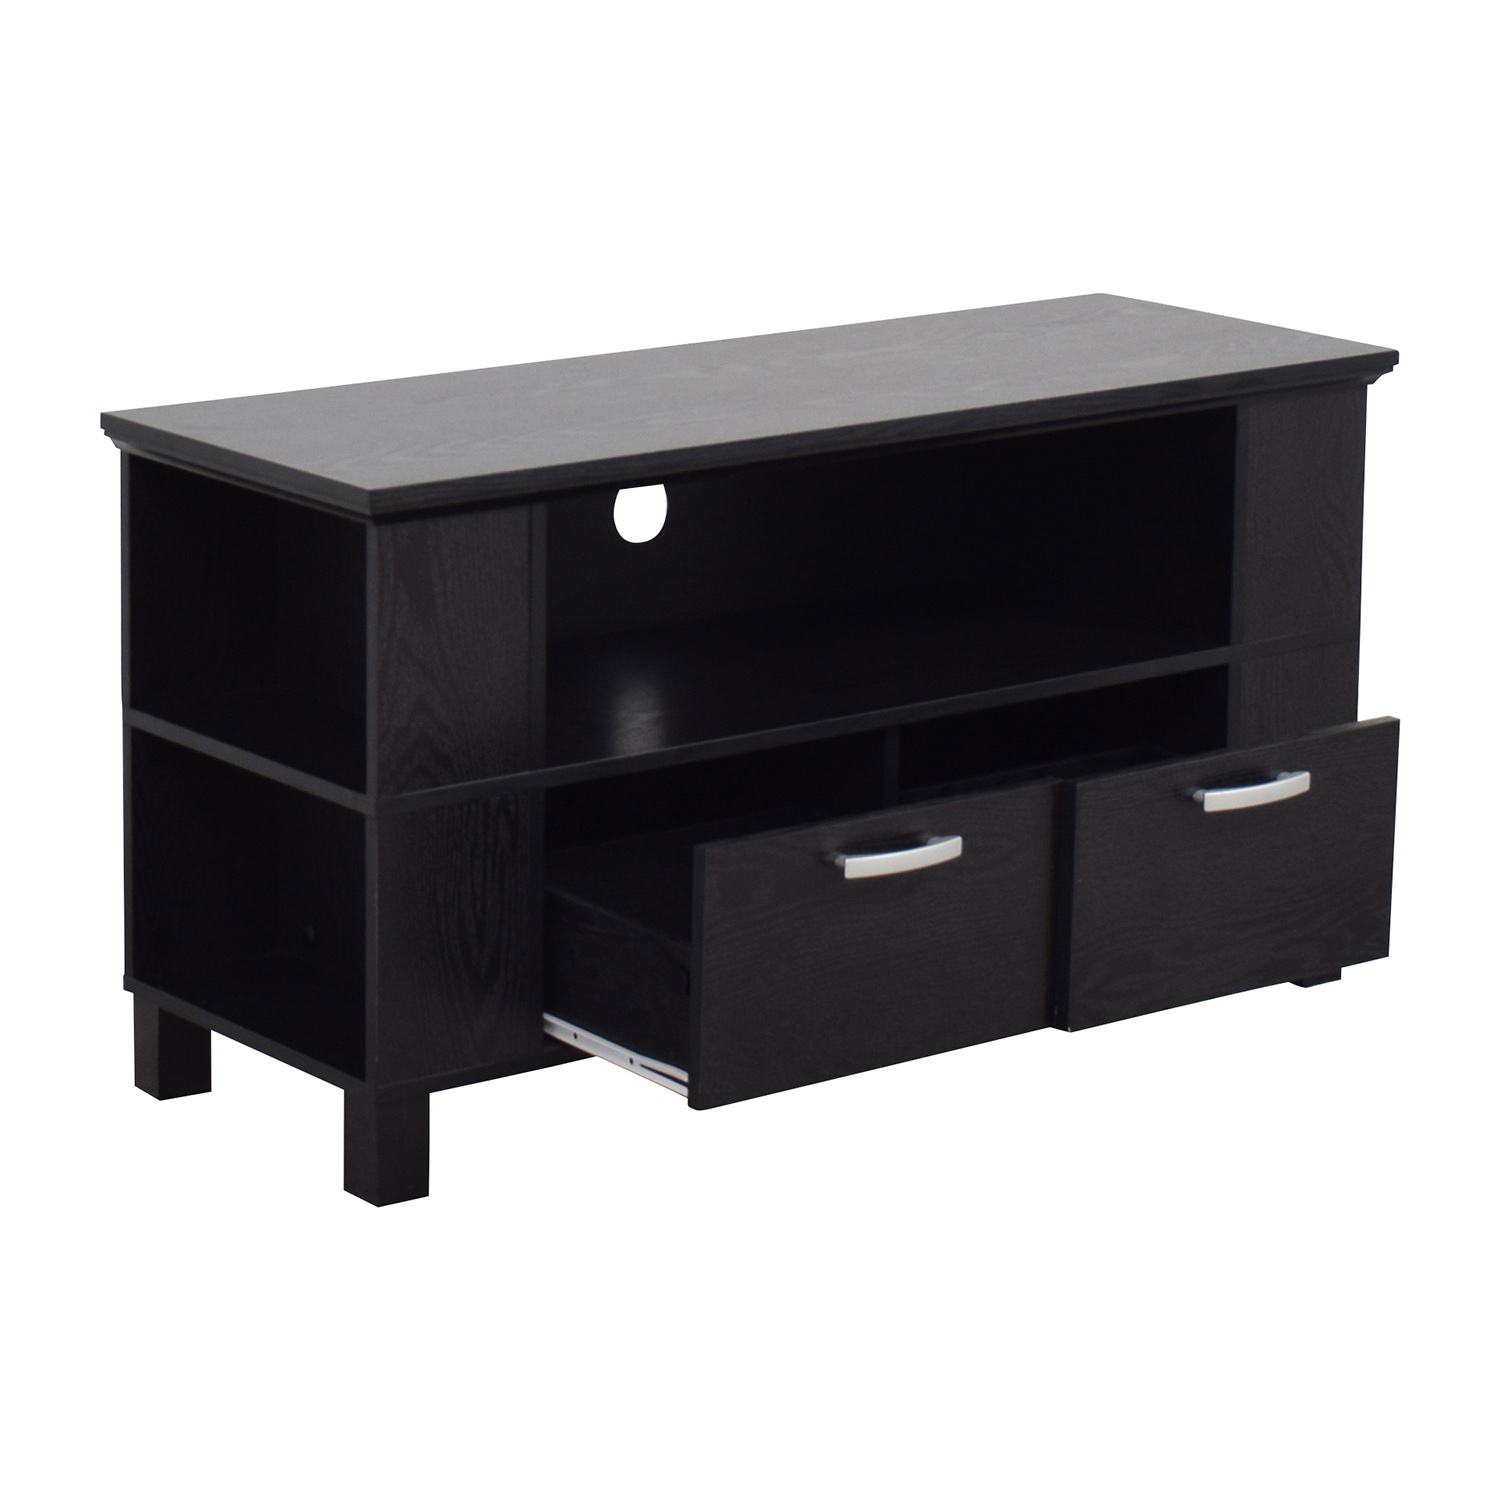 Espresso TV Stand with Two Drawers with Chrome Handles